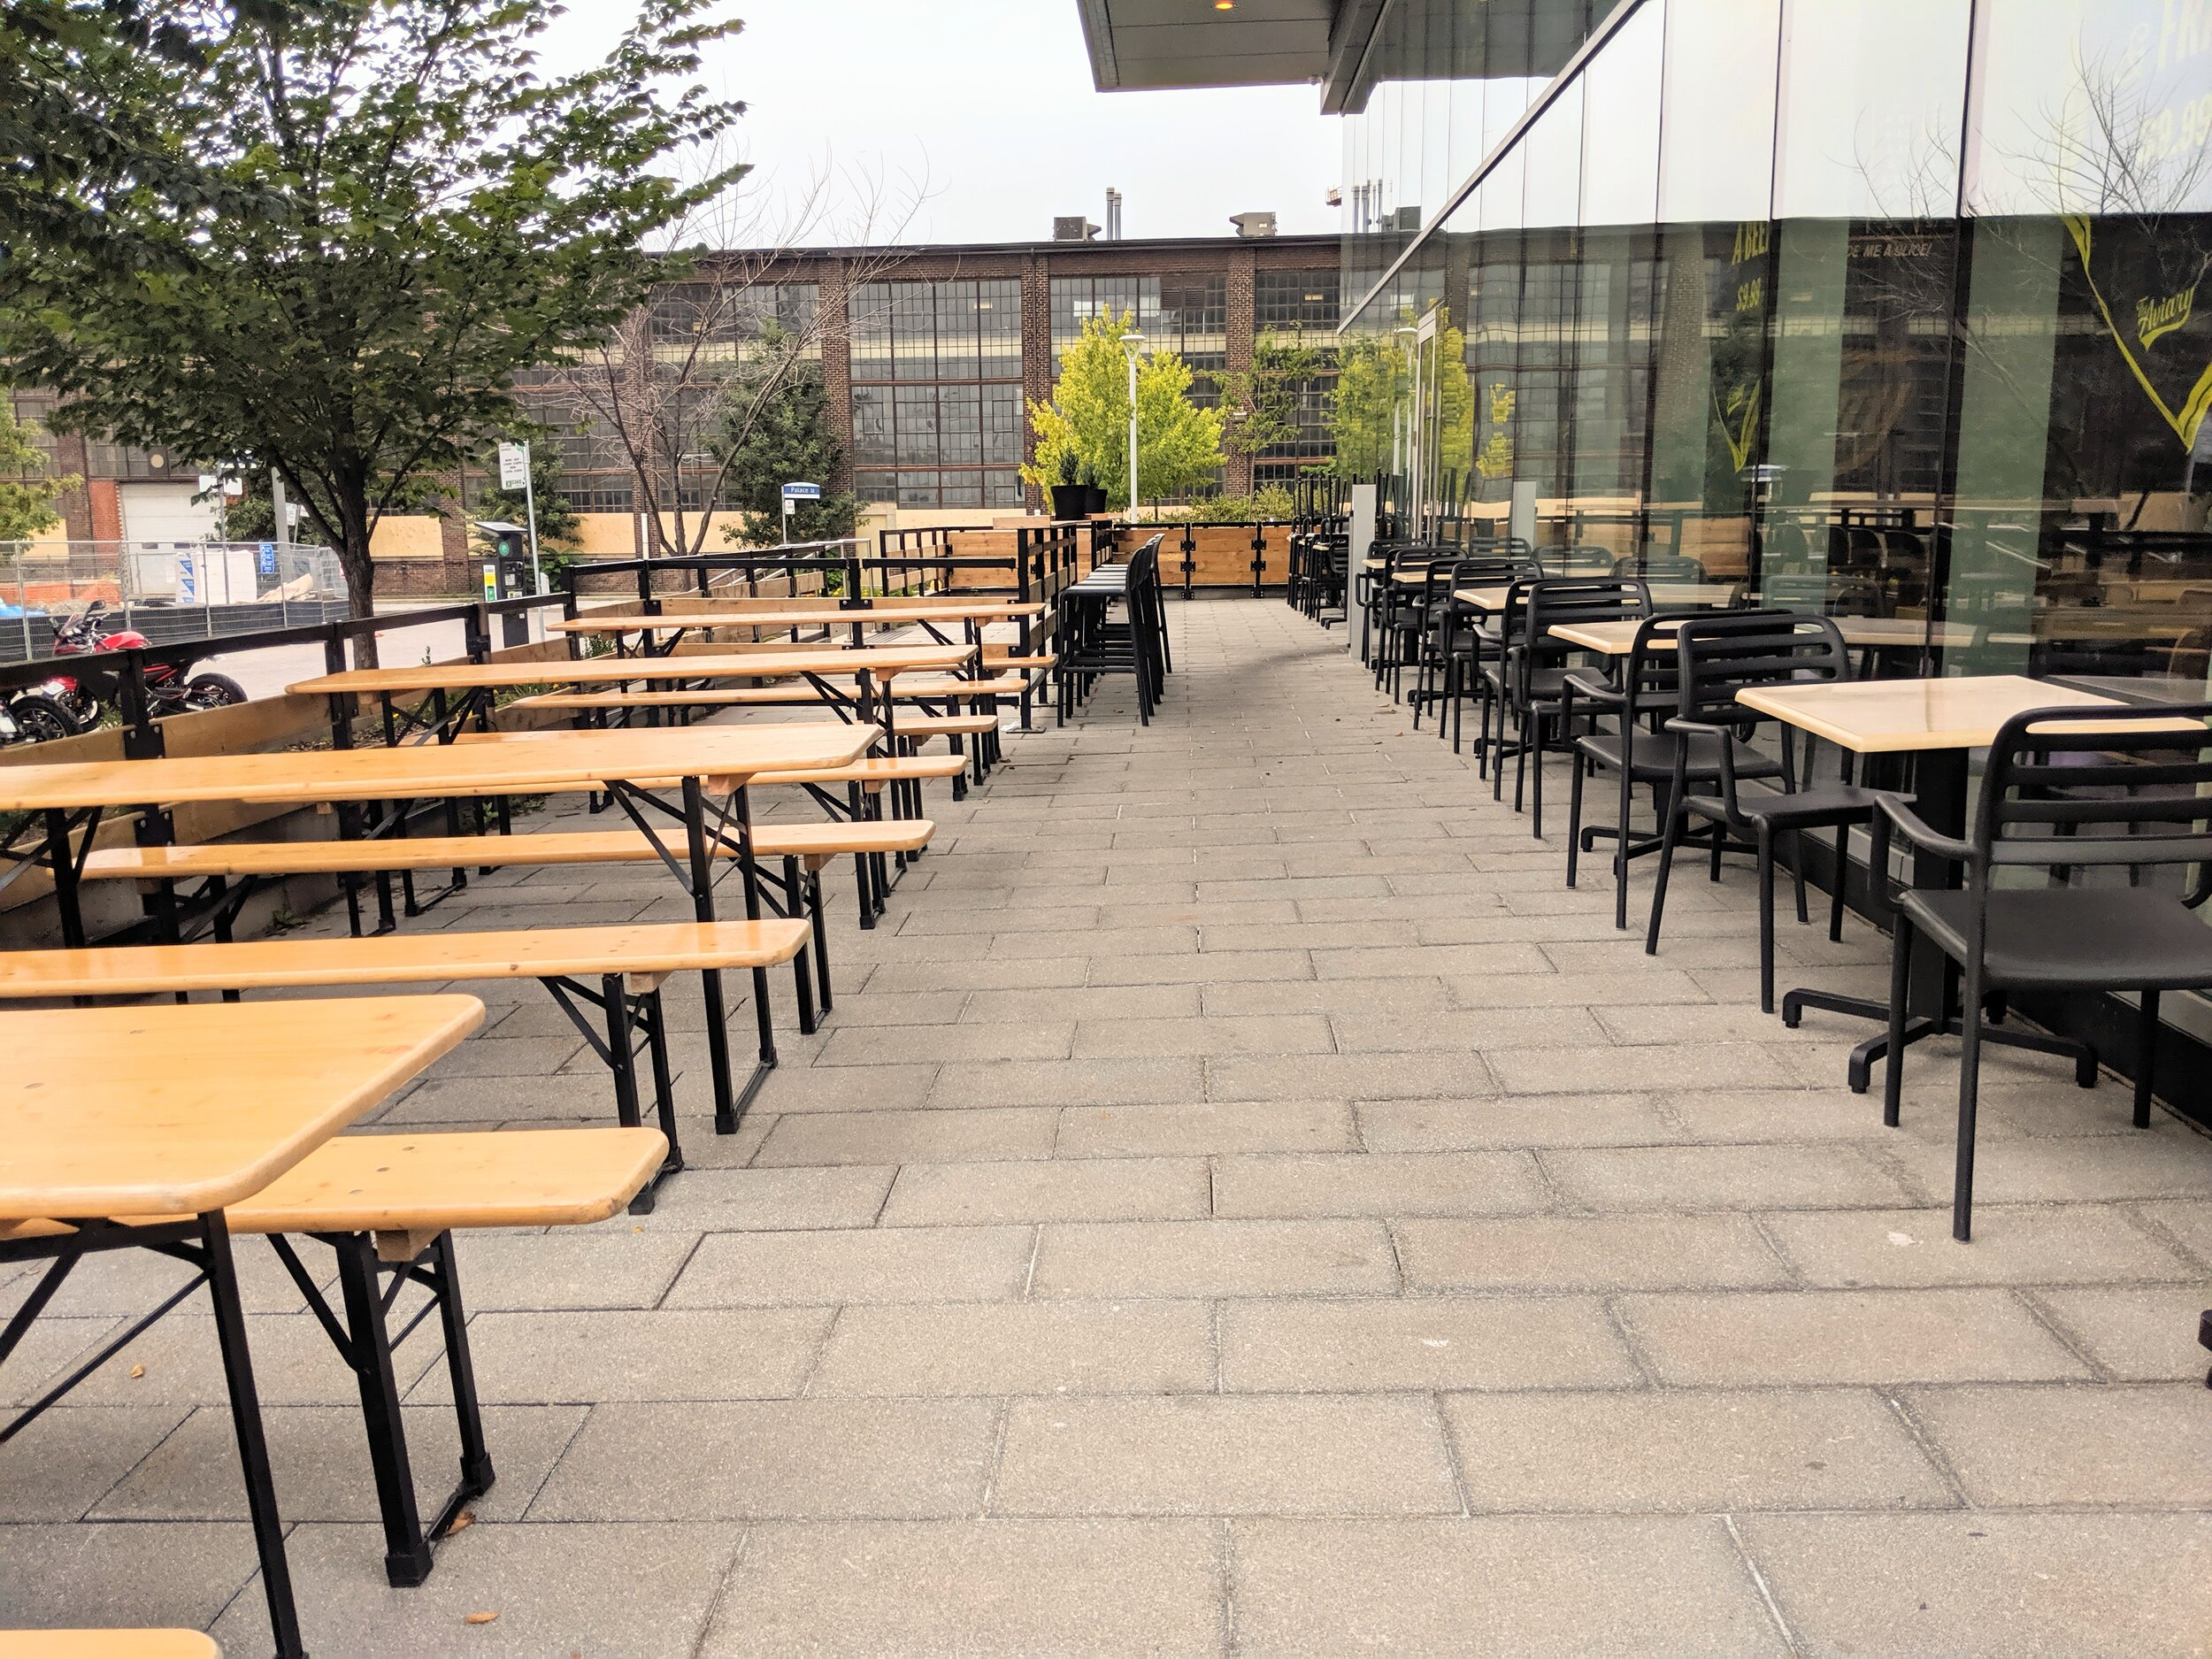 Picture of the accessible benches on the patio